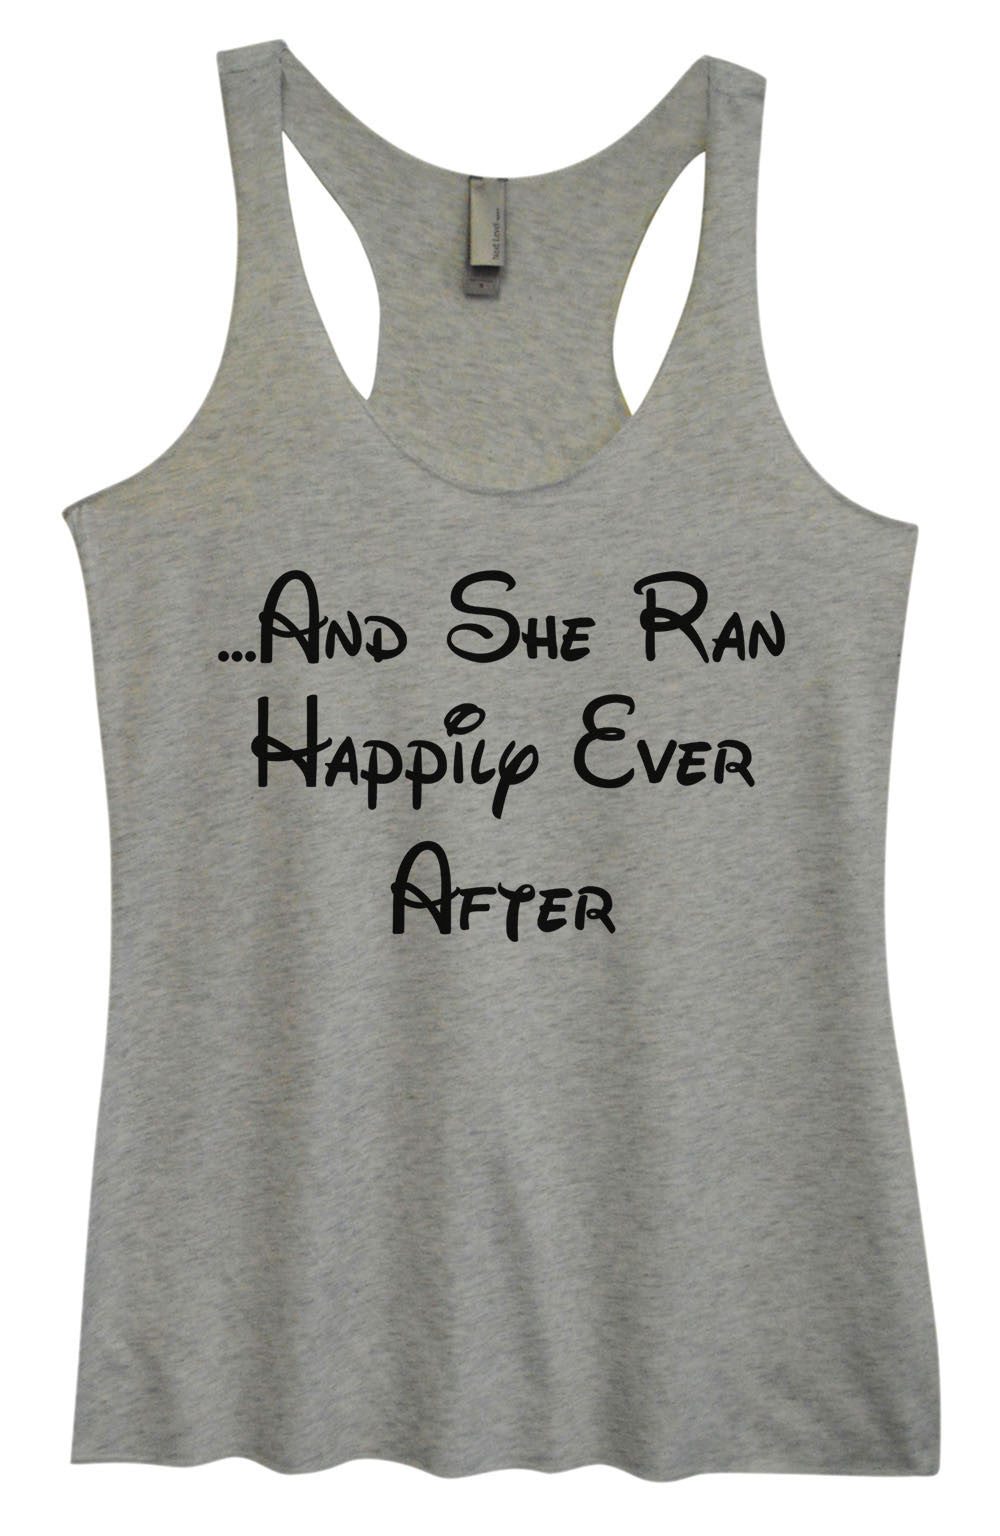 Womens Fashion Triblend Tank Top - ...And She Ran Happily Ever After - Tri-954 - Funny Shirts Tank Tops Burnouts and Triblends  - 2